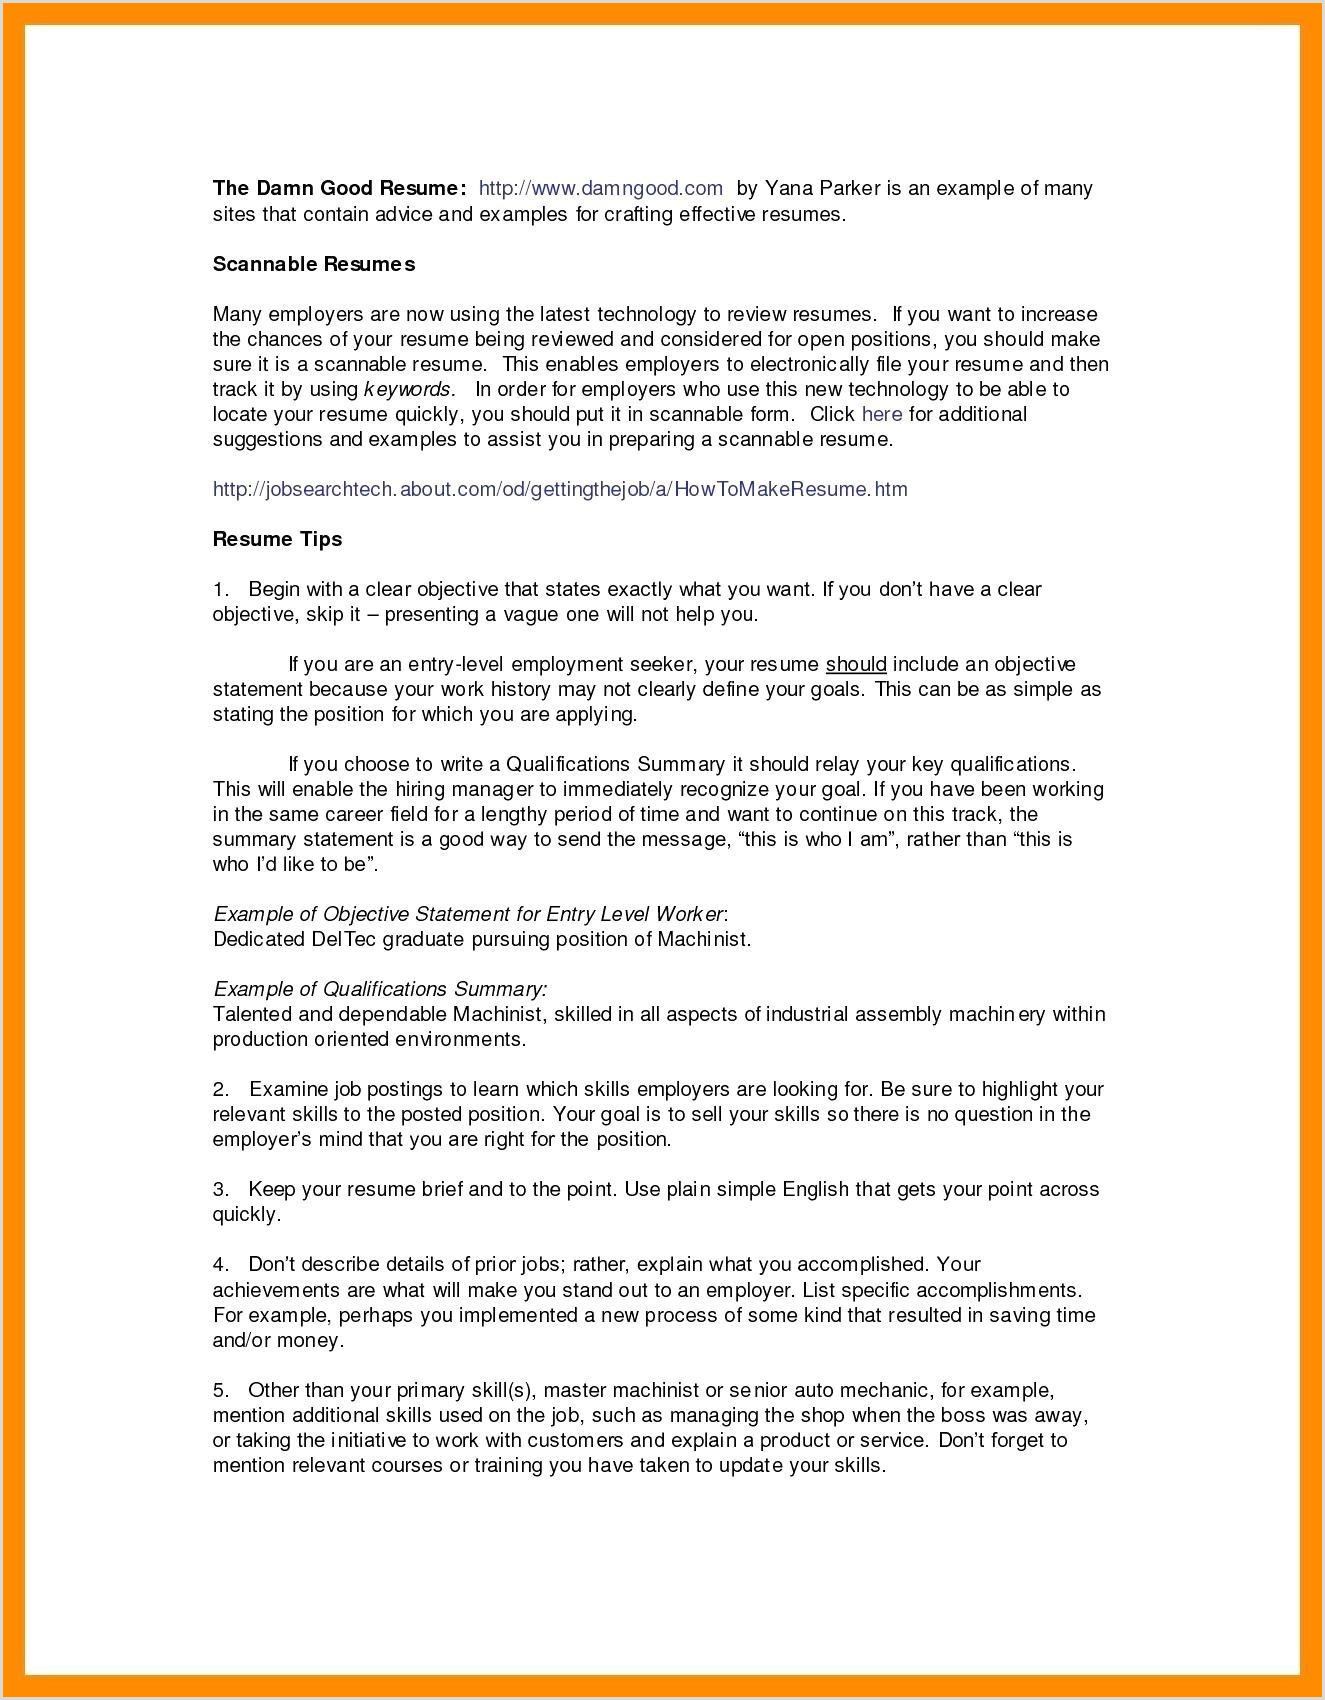 Resume format for Job Fresher Doc Doc Descargar Career Objective for Resume for B Fresher